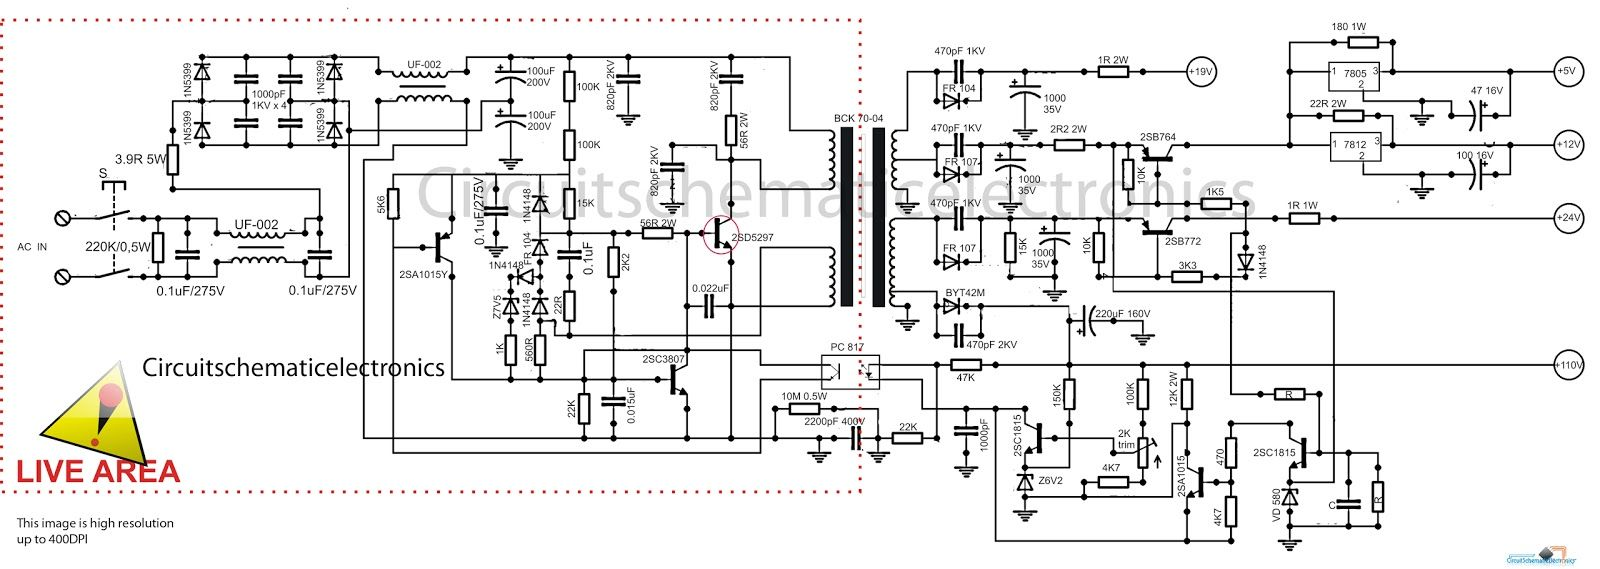 Free Tv Circuit Diagram Trusted Wiring Index 238 Control Seekiccom Switching Power Suplly For Color Television About Pdf